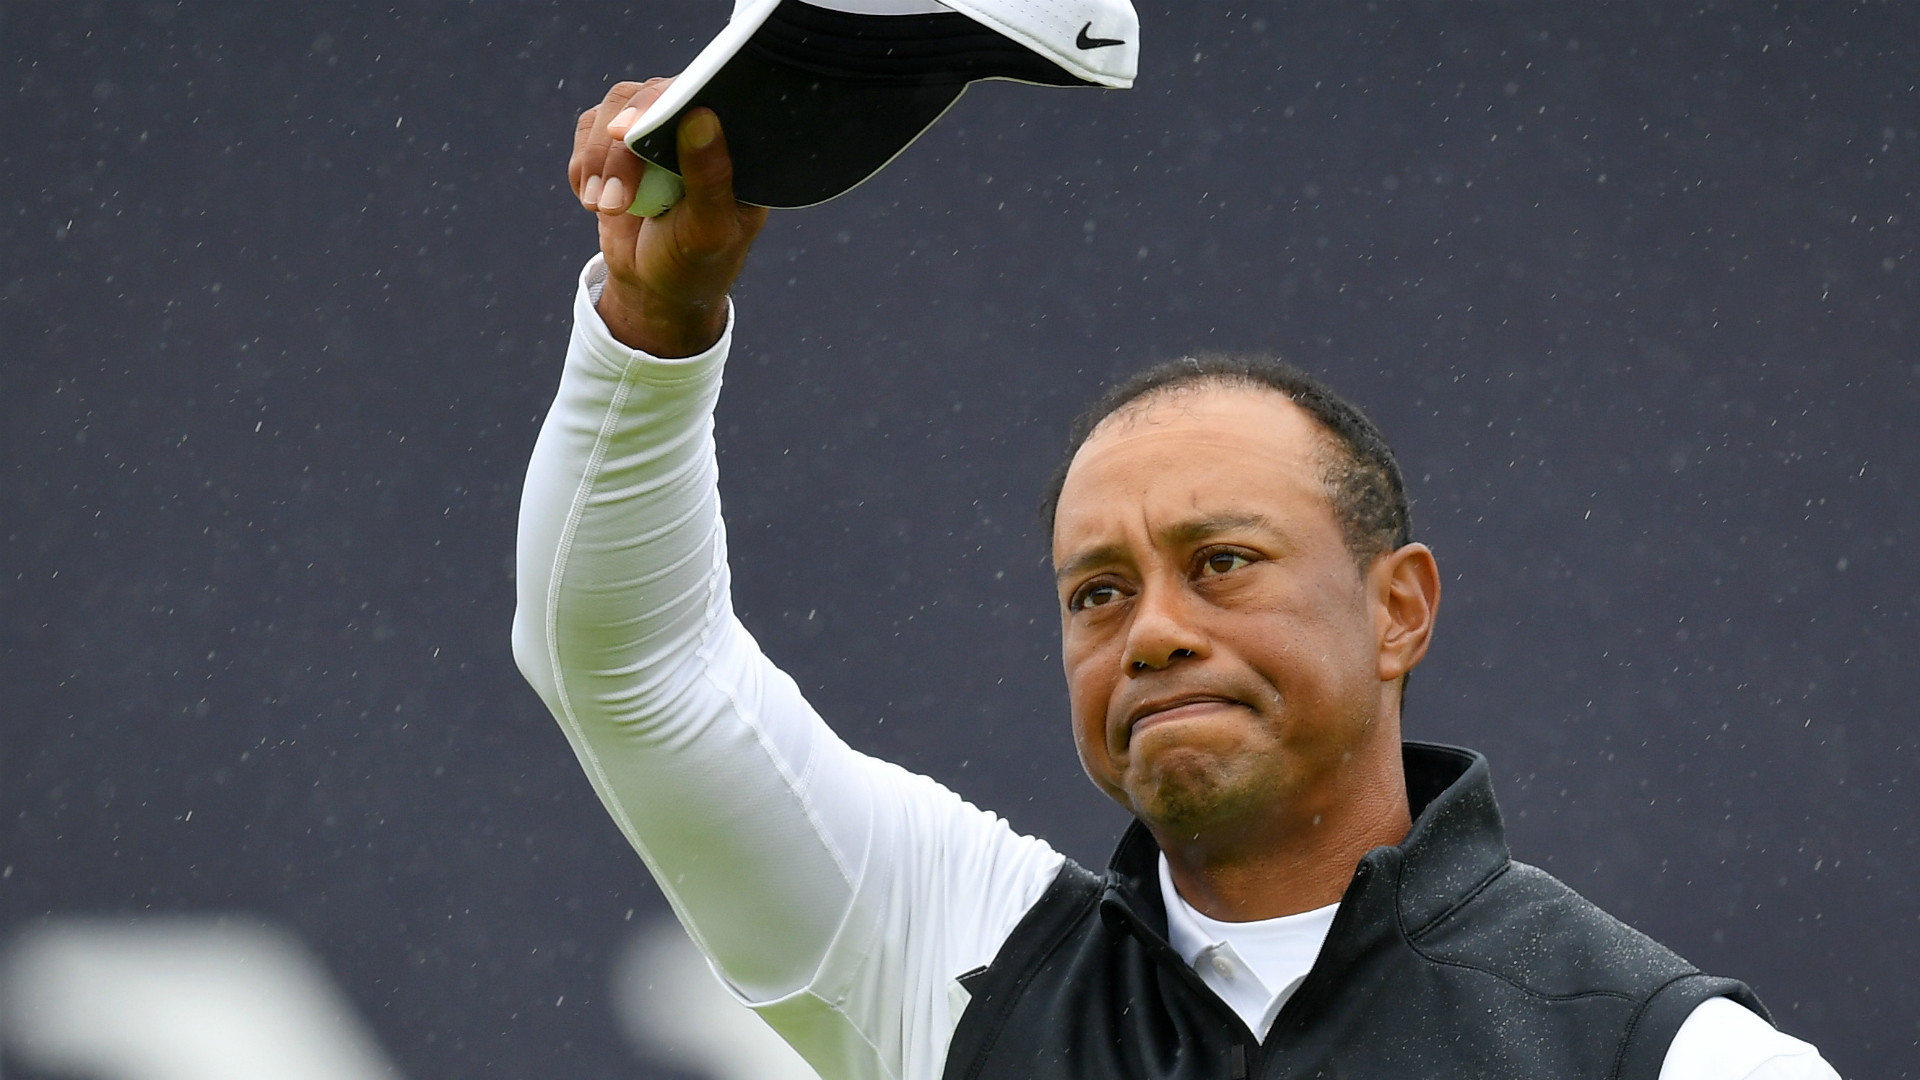 British Open 2019: Tiger Woods loves 'stress' of major golf but frustrated by results